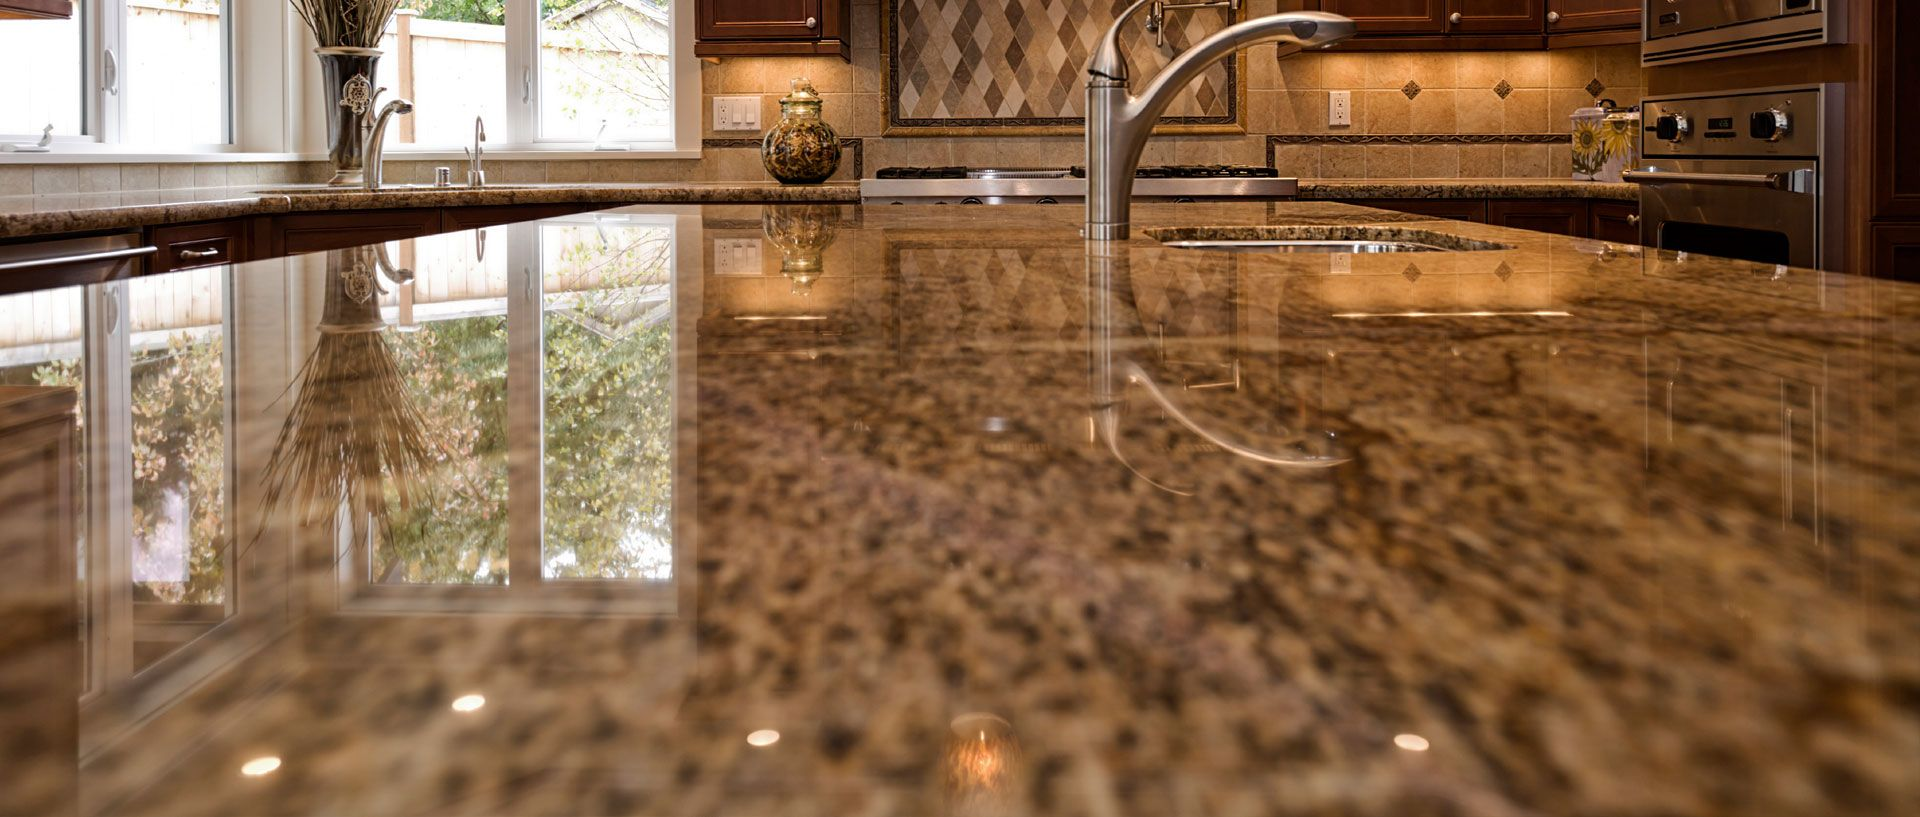 Pros, Cons, And Costs Of 10 Countertop Materials